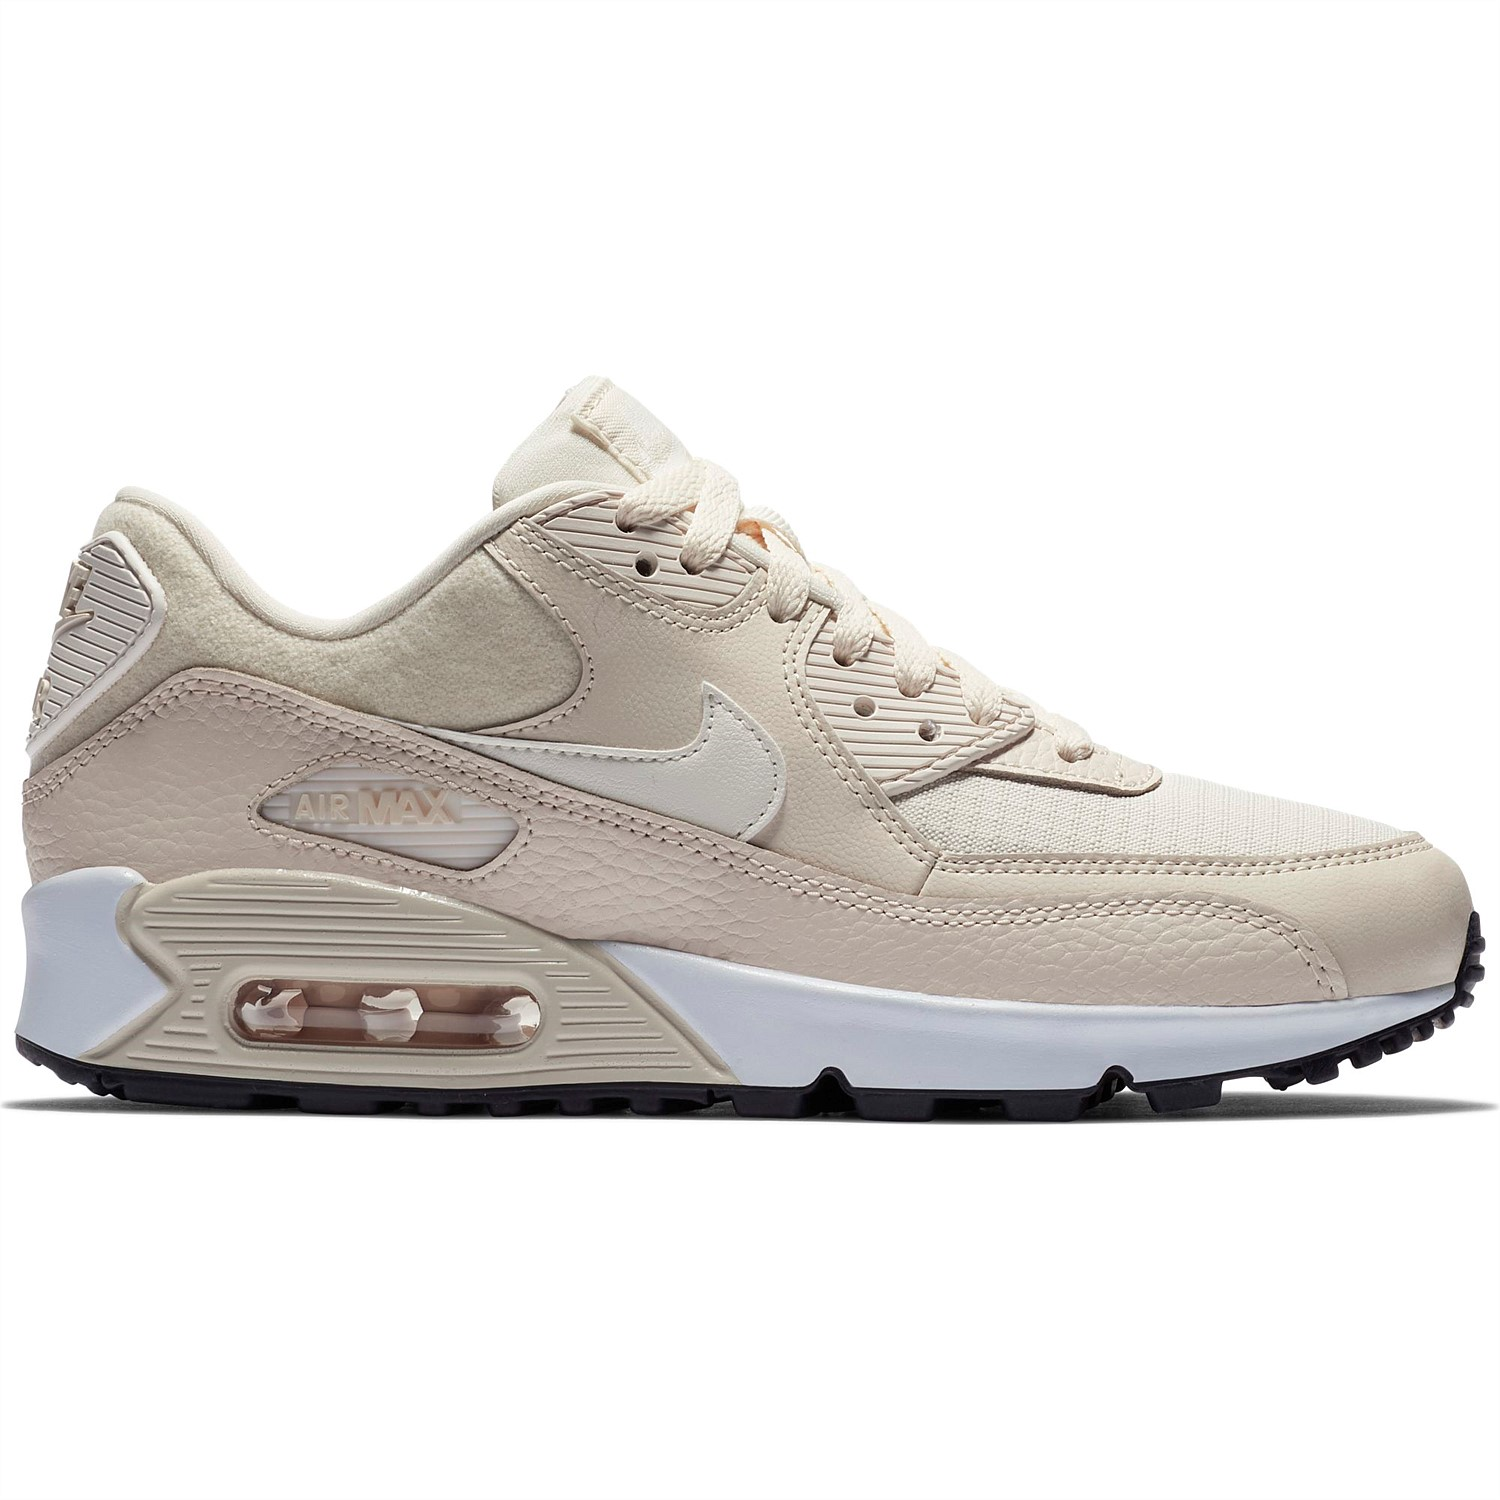 cheap for discount 6b335 dbb90 Women s Footwear   Women s Lifestyle and Training Shoes Online   Stirling  Sports - Air Max 90 Womens